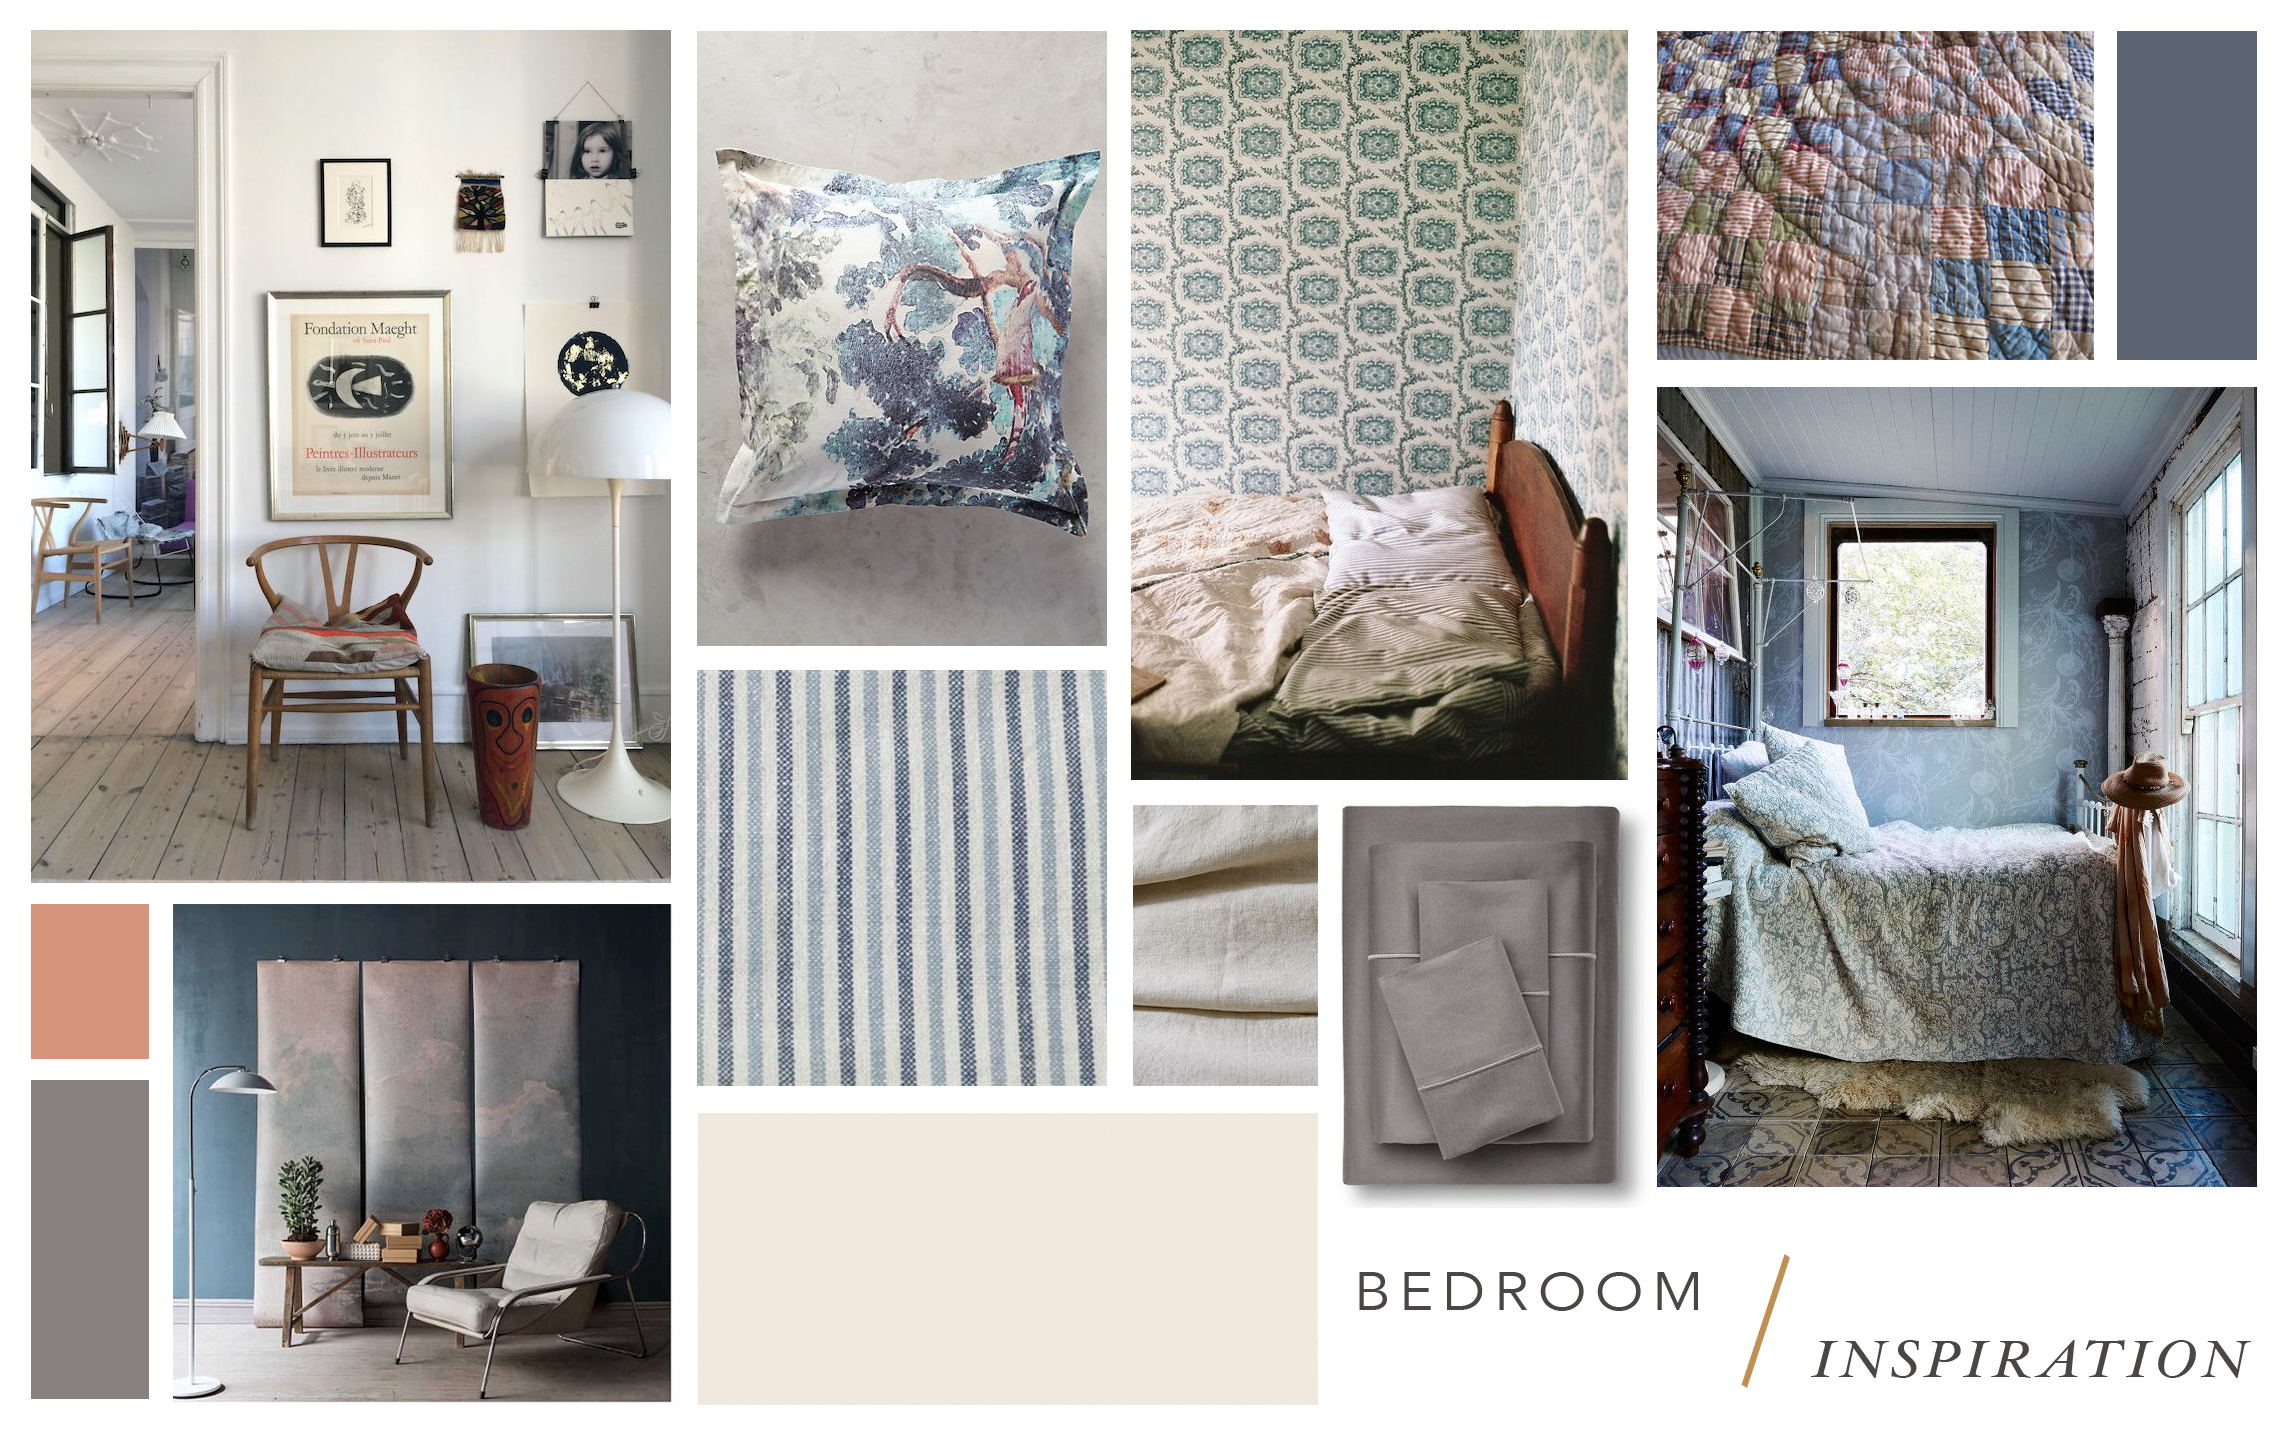 bedroom inspiration board.jpg